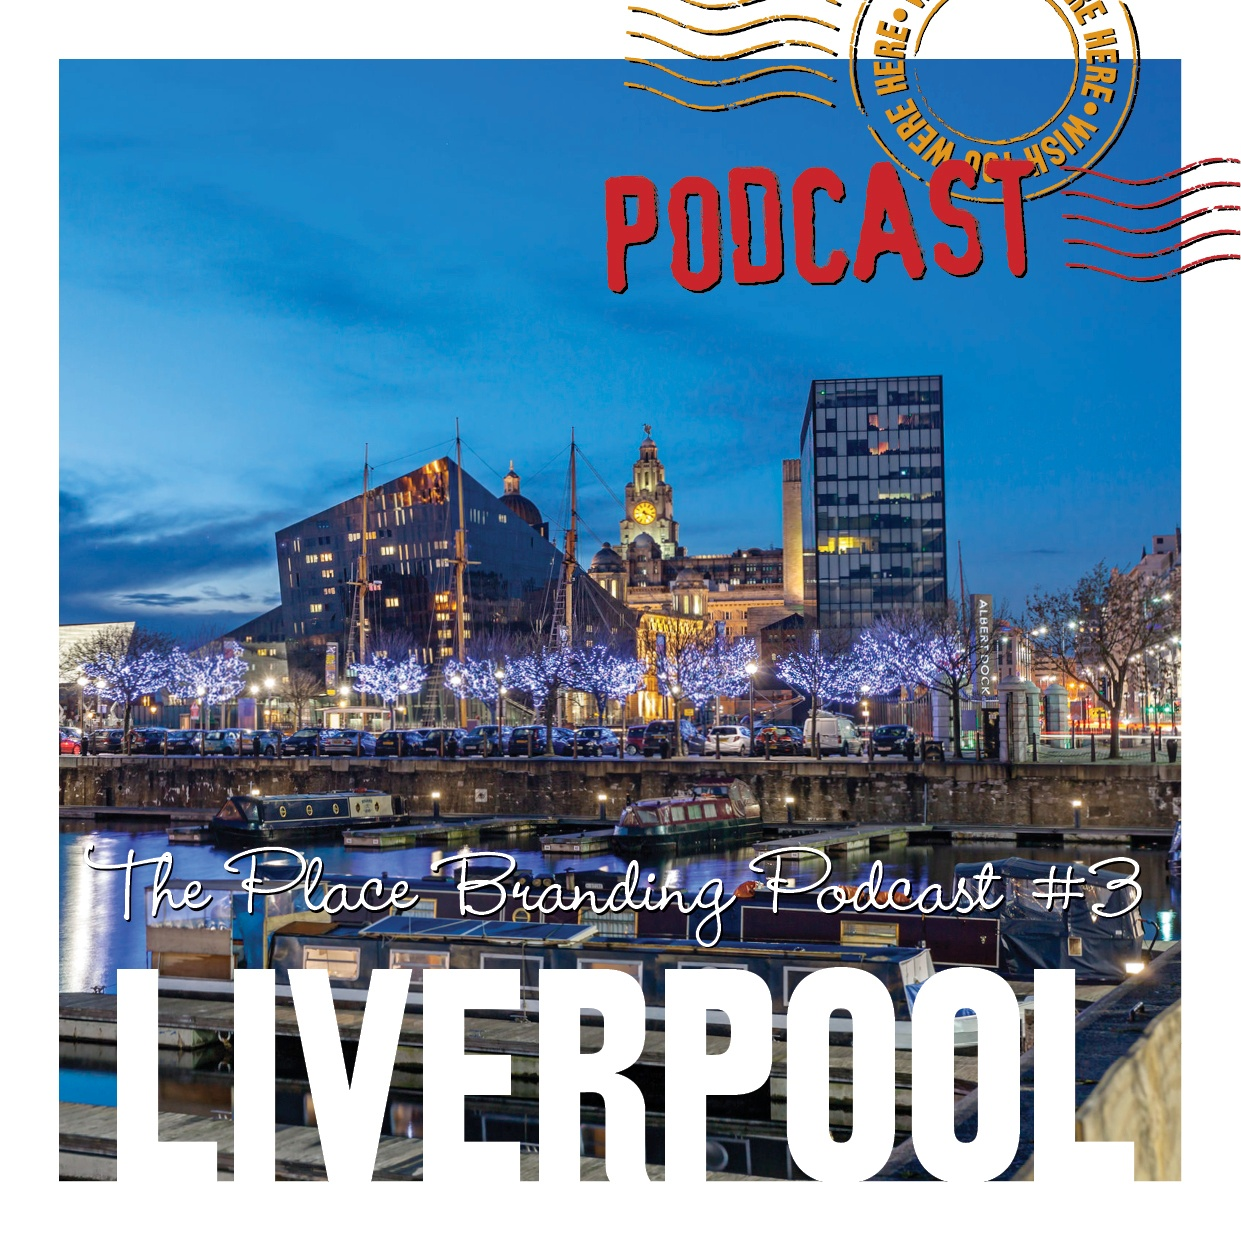 Place branding podcast: episode 4: Liverpool